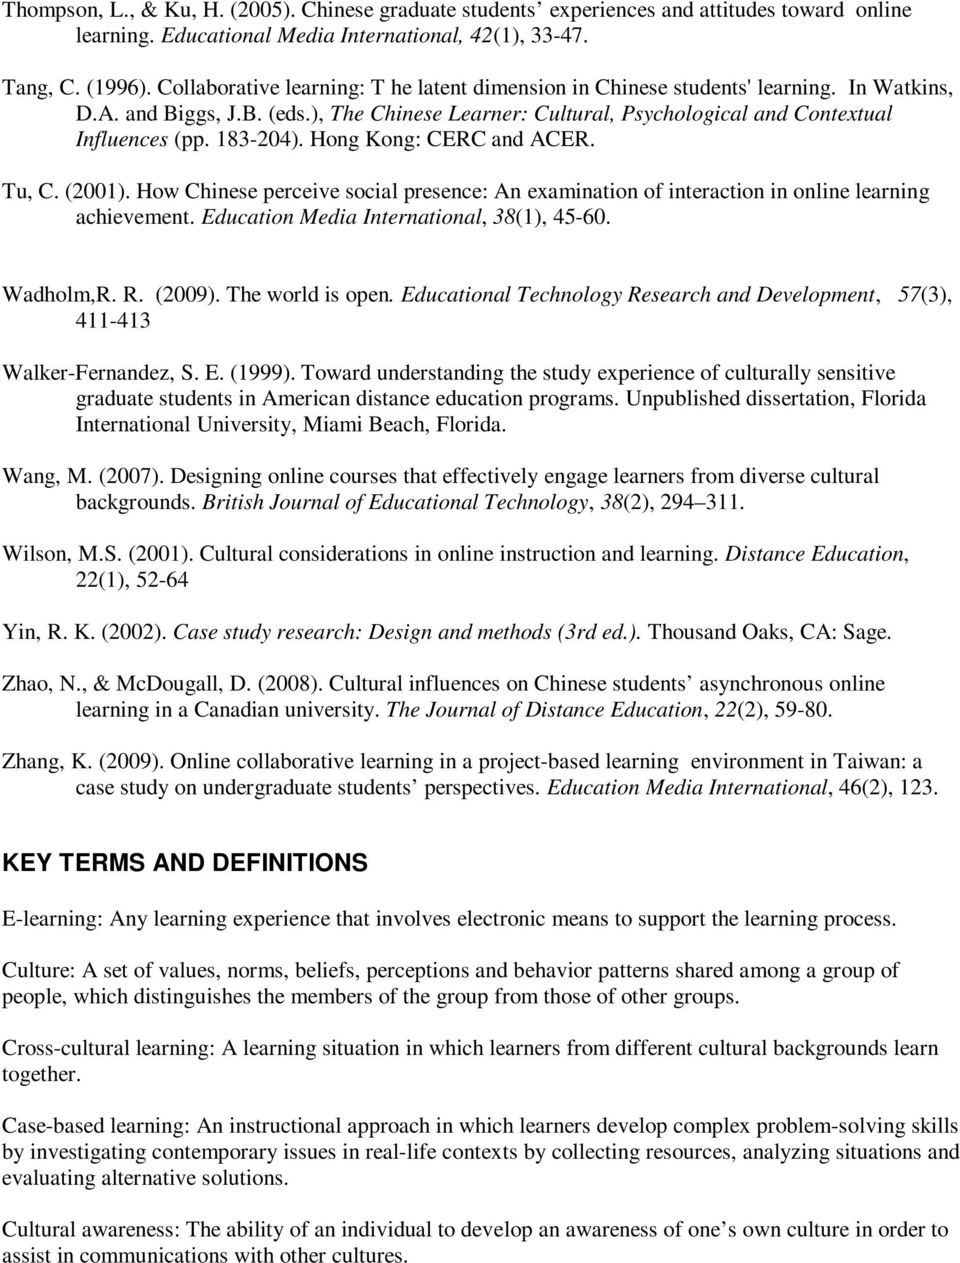 183-204). Hong Kong: CERC and ACER. Tu, C. (2001). How Chinese perceive social presence: An examination of interaction in online learning achievement. Education Media International, 38(1), 45-60.